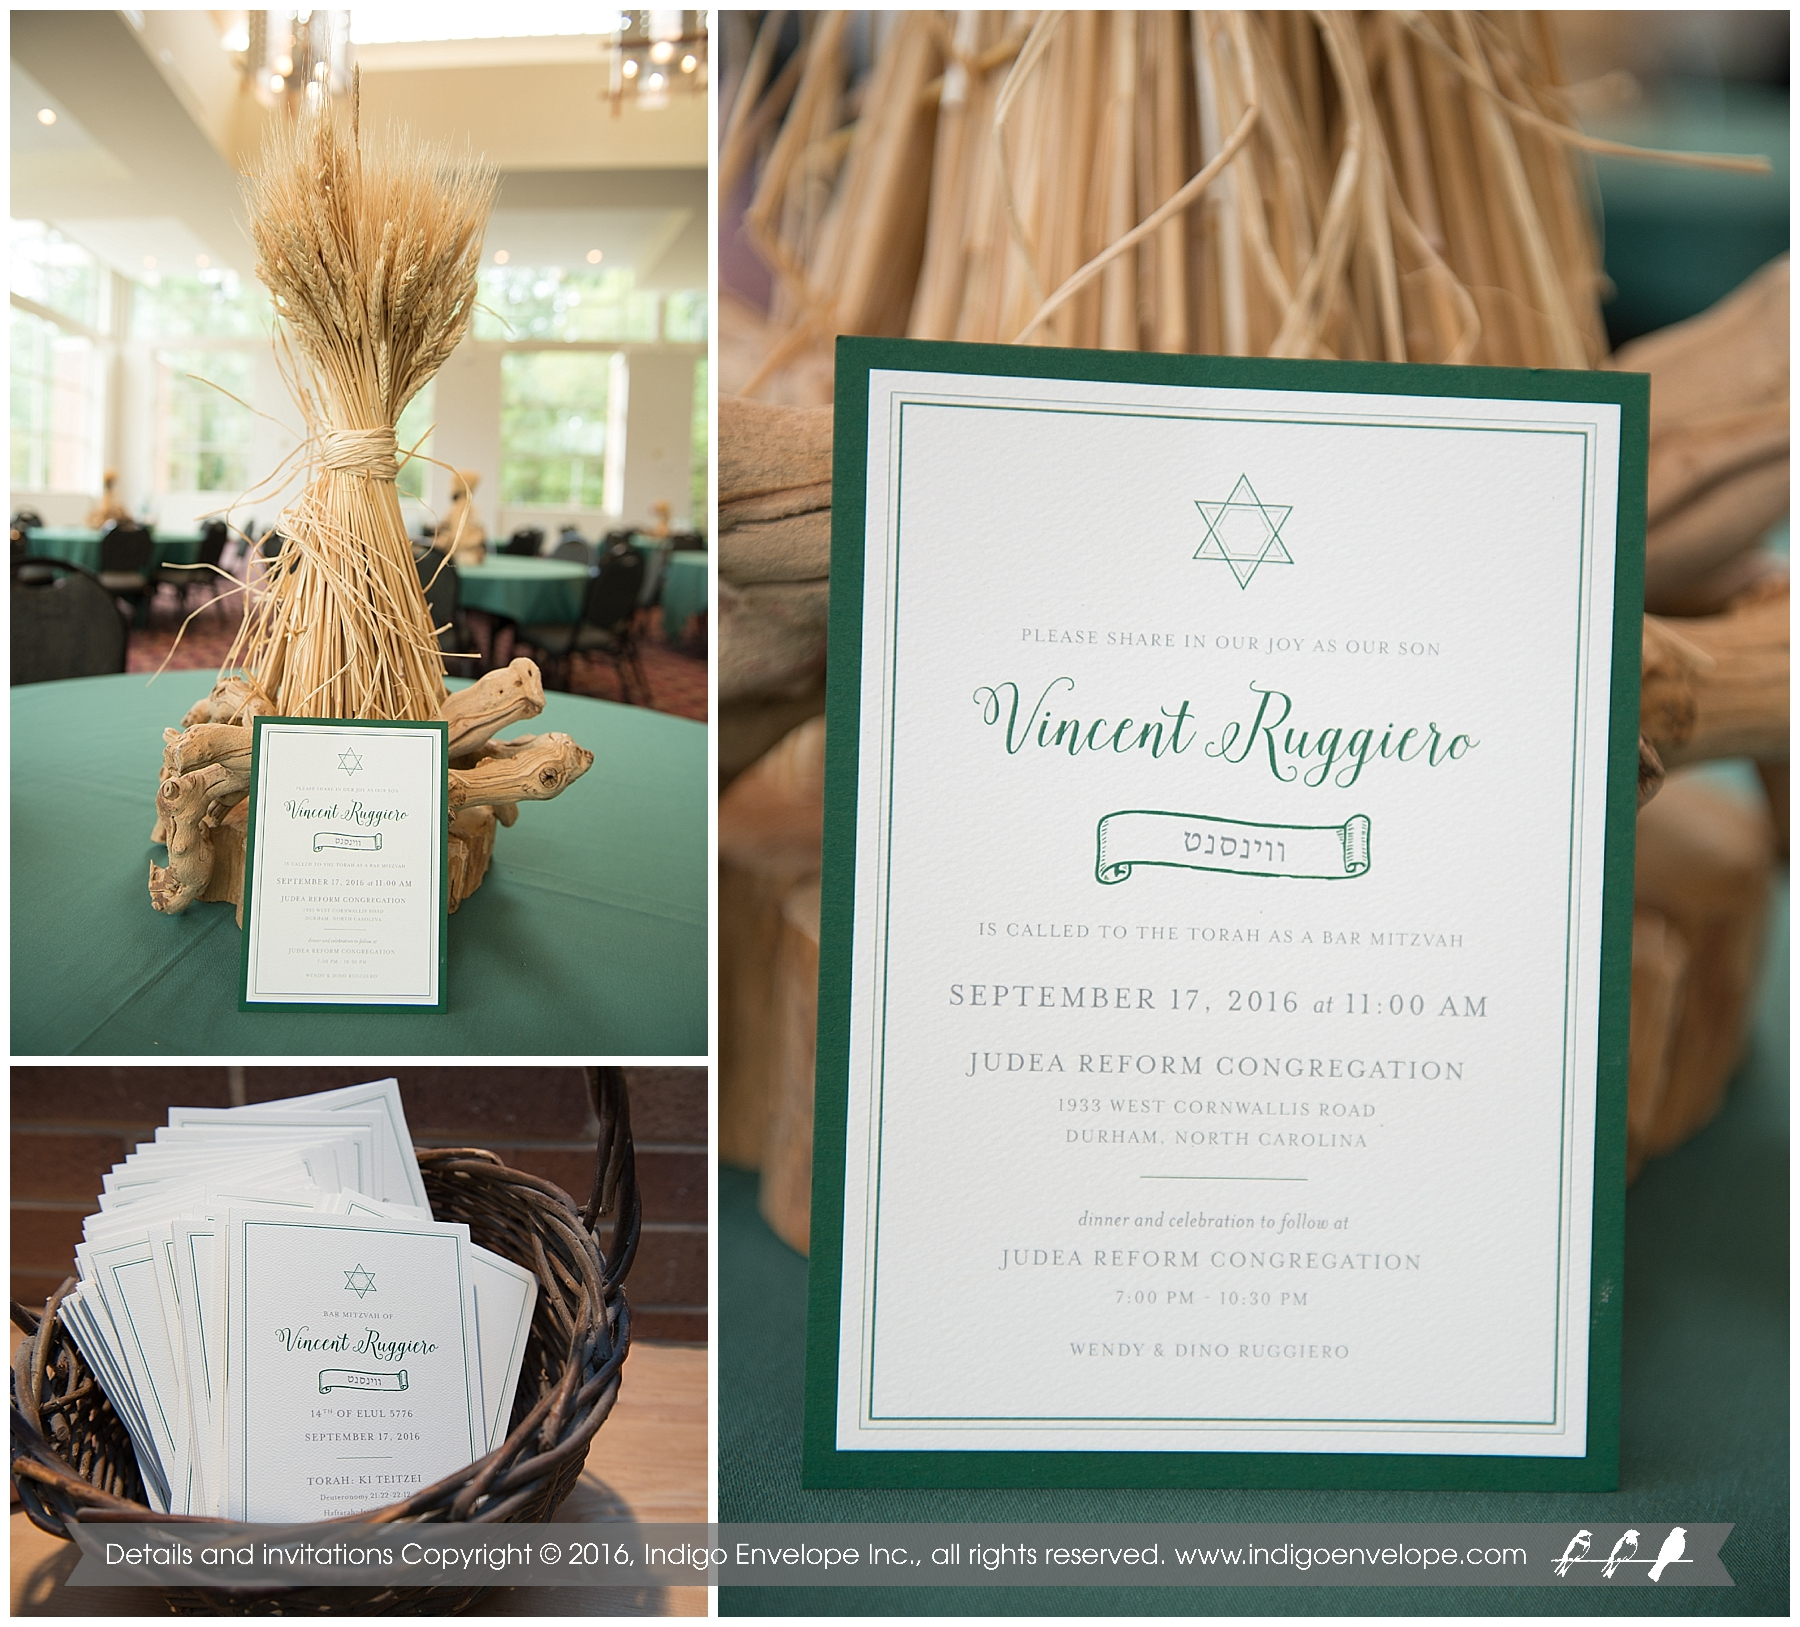 IndigoEnvelope-Ruggiero-Farm-Bar Mitzvah-Invitation